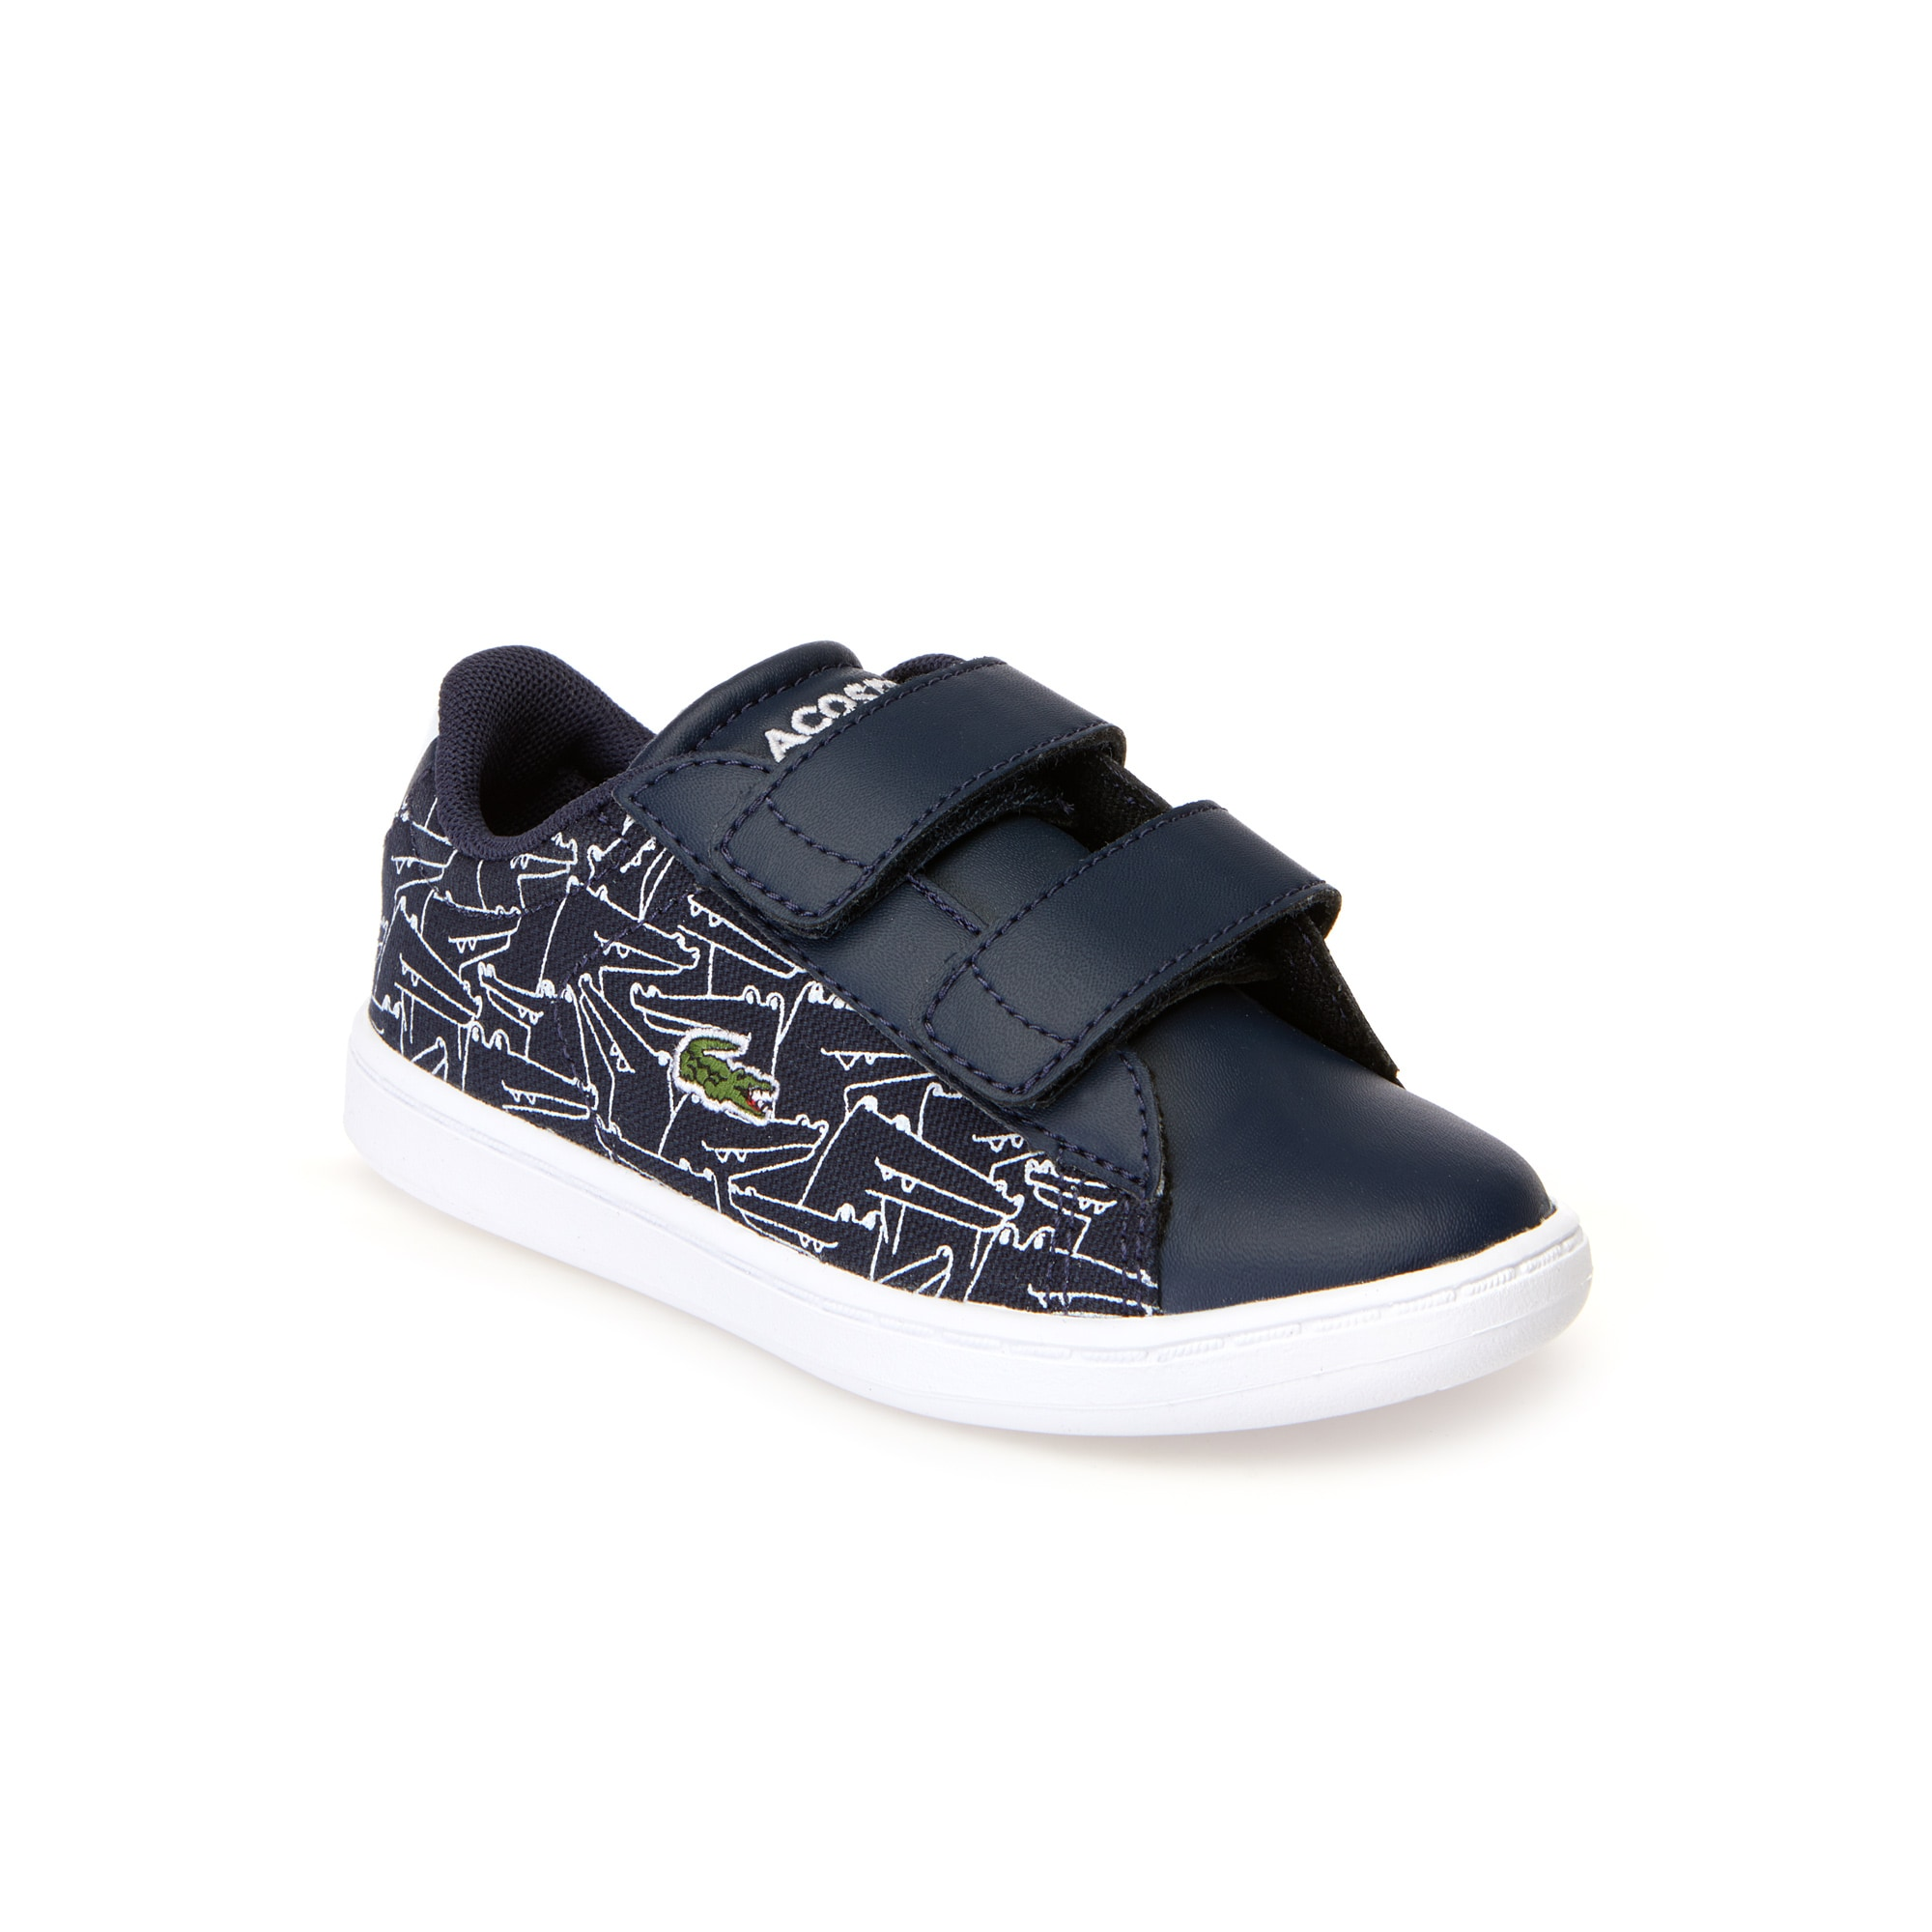 069acf2c531cf2 Infants  Carnaby Evo Canvas and Synthetic Trainers